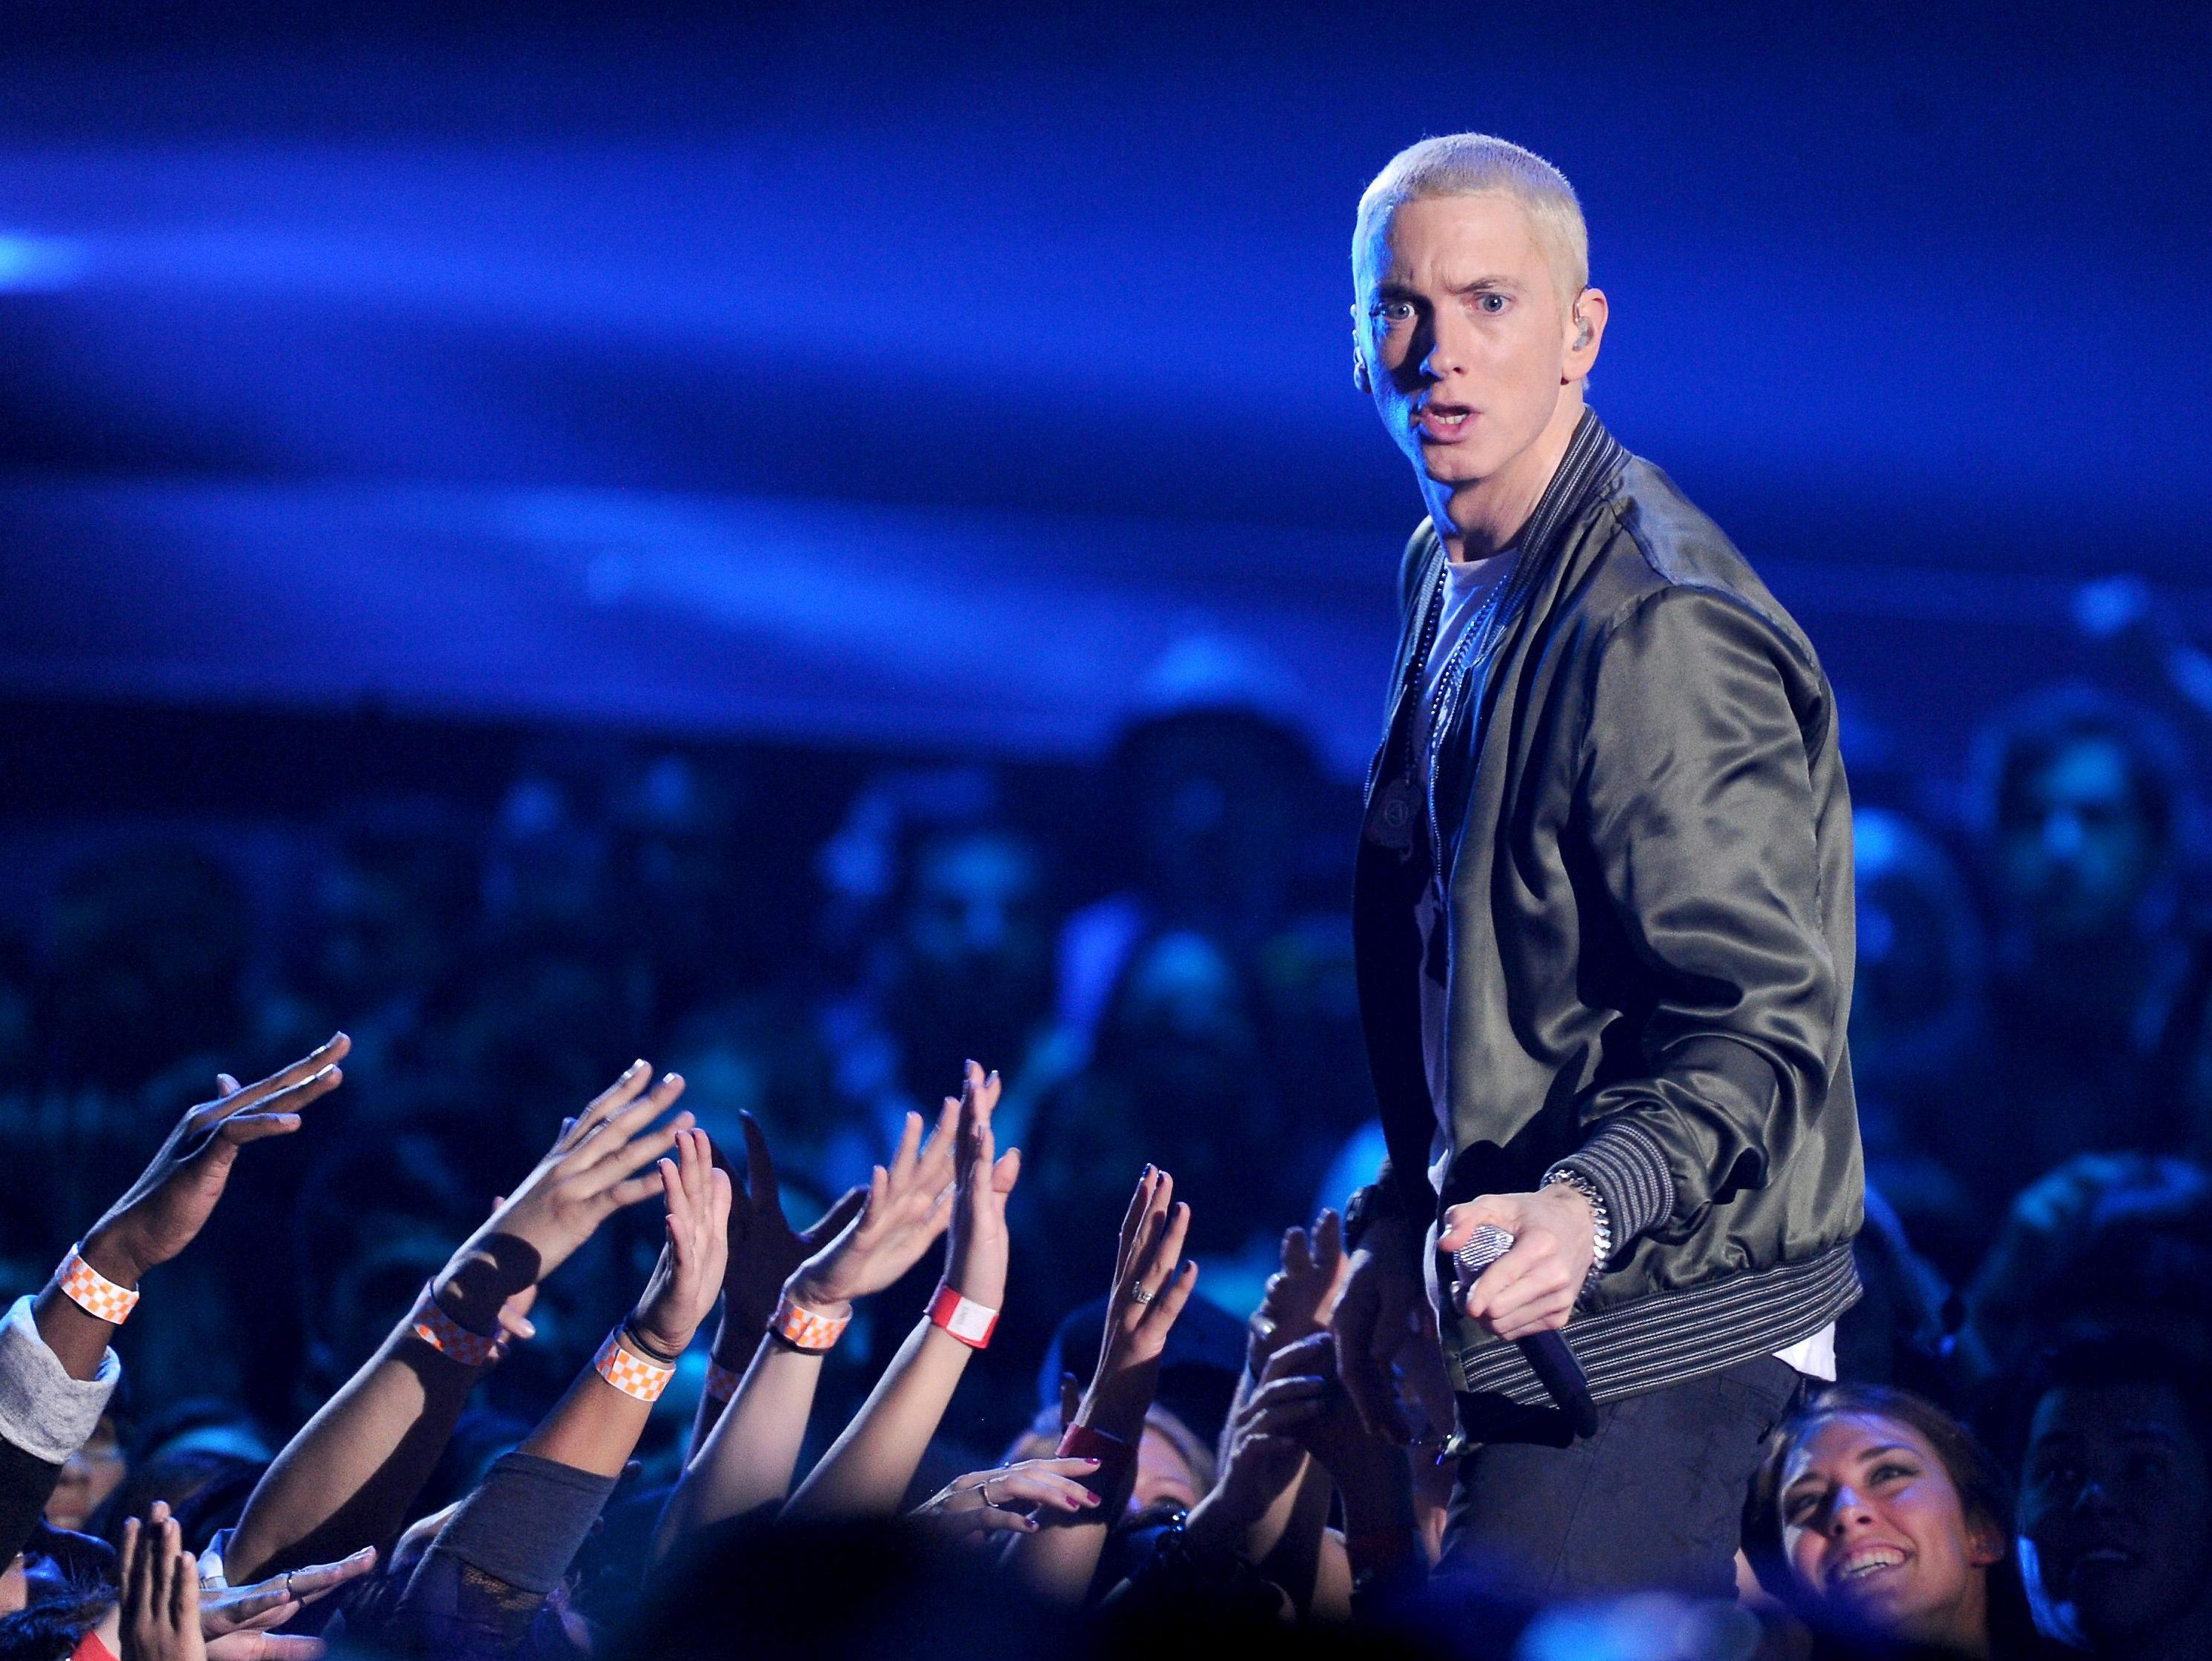 Eminem UK Revival Tour 2018 – how to get tickets for Twickenham Stadium shows in July